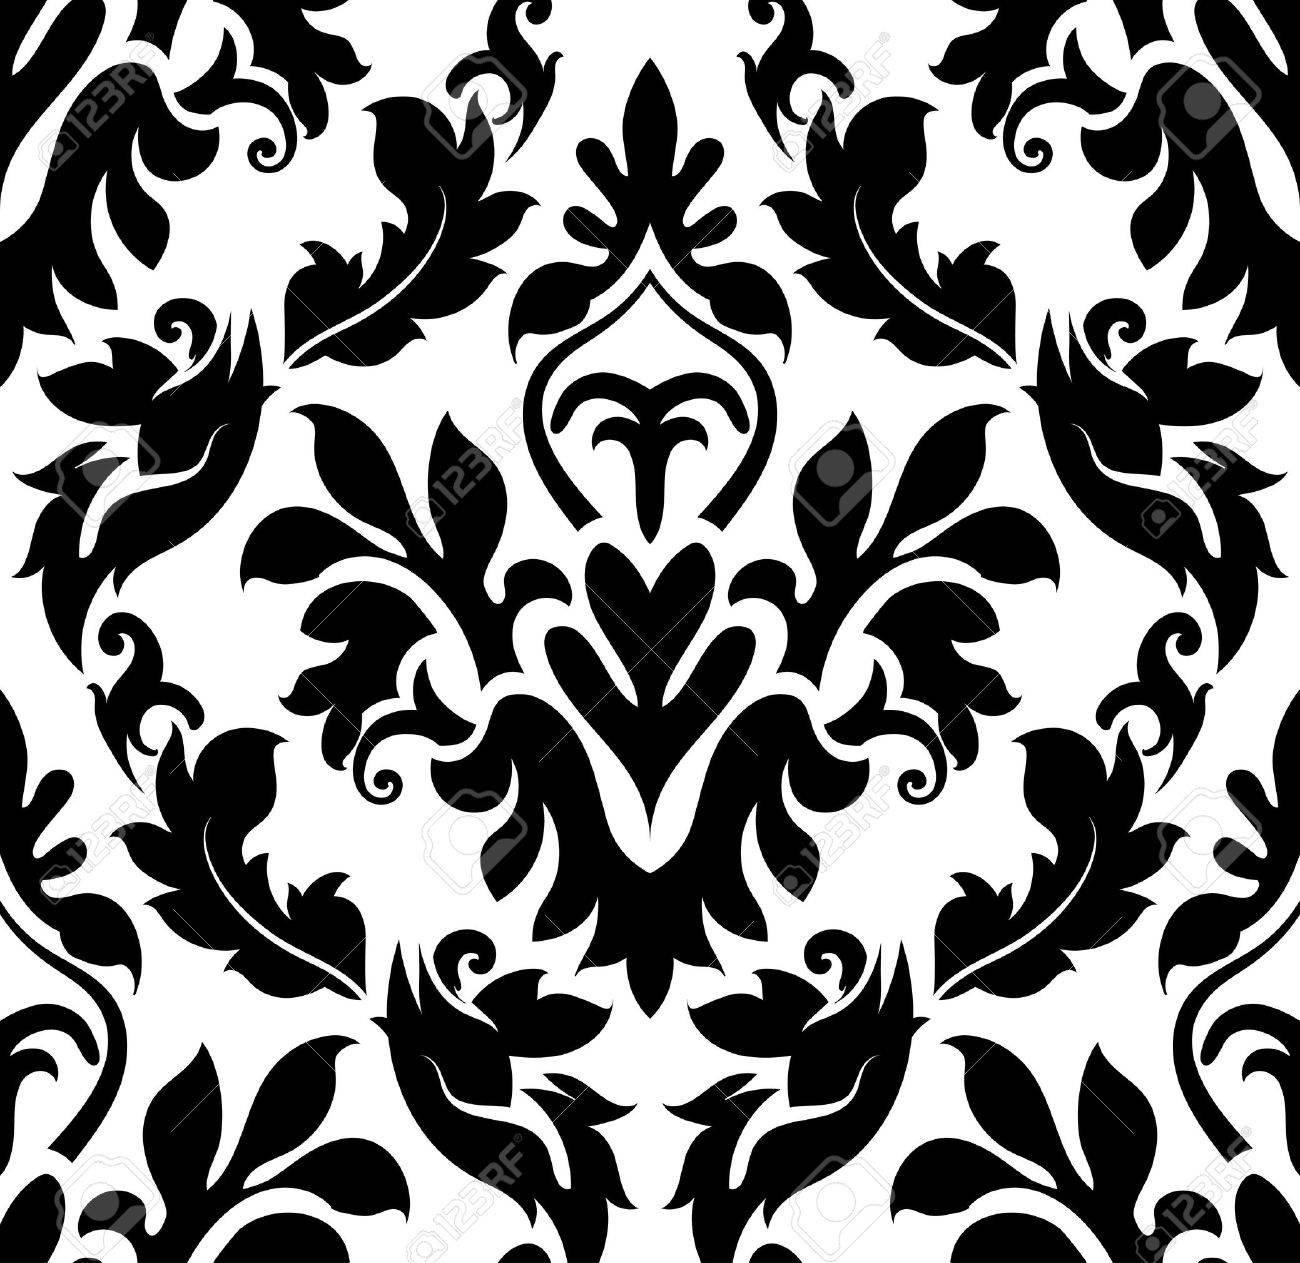 damask seamless pattern eps 10 vector illustration without